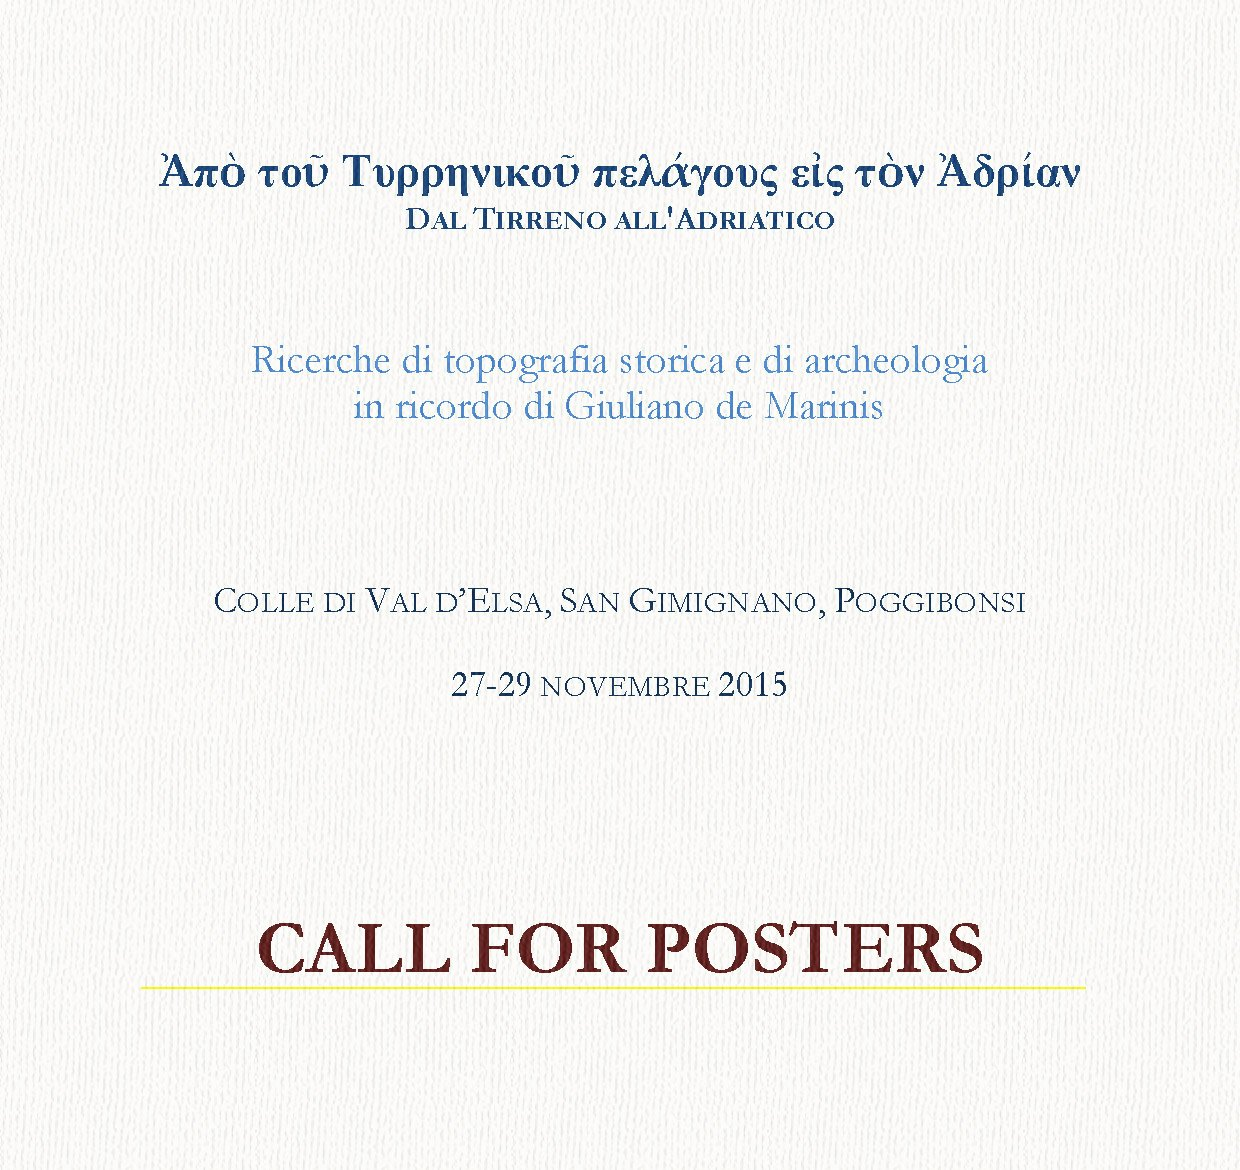 Call for posters.